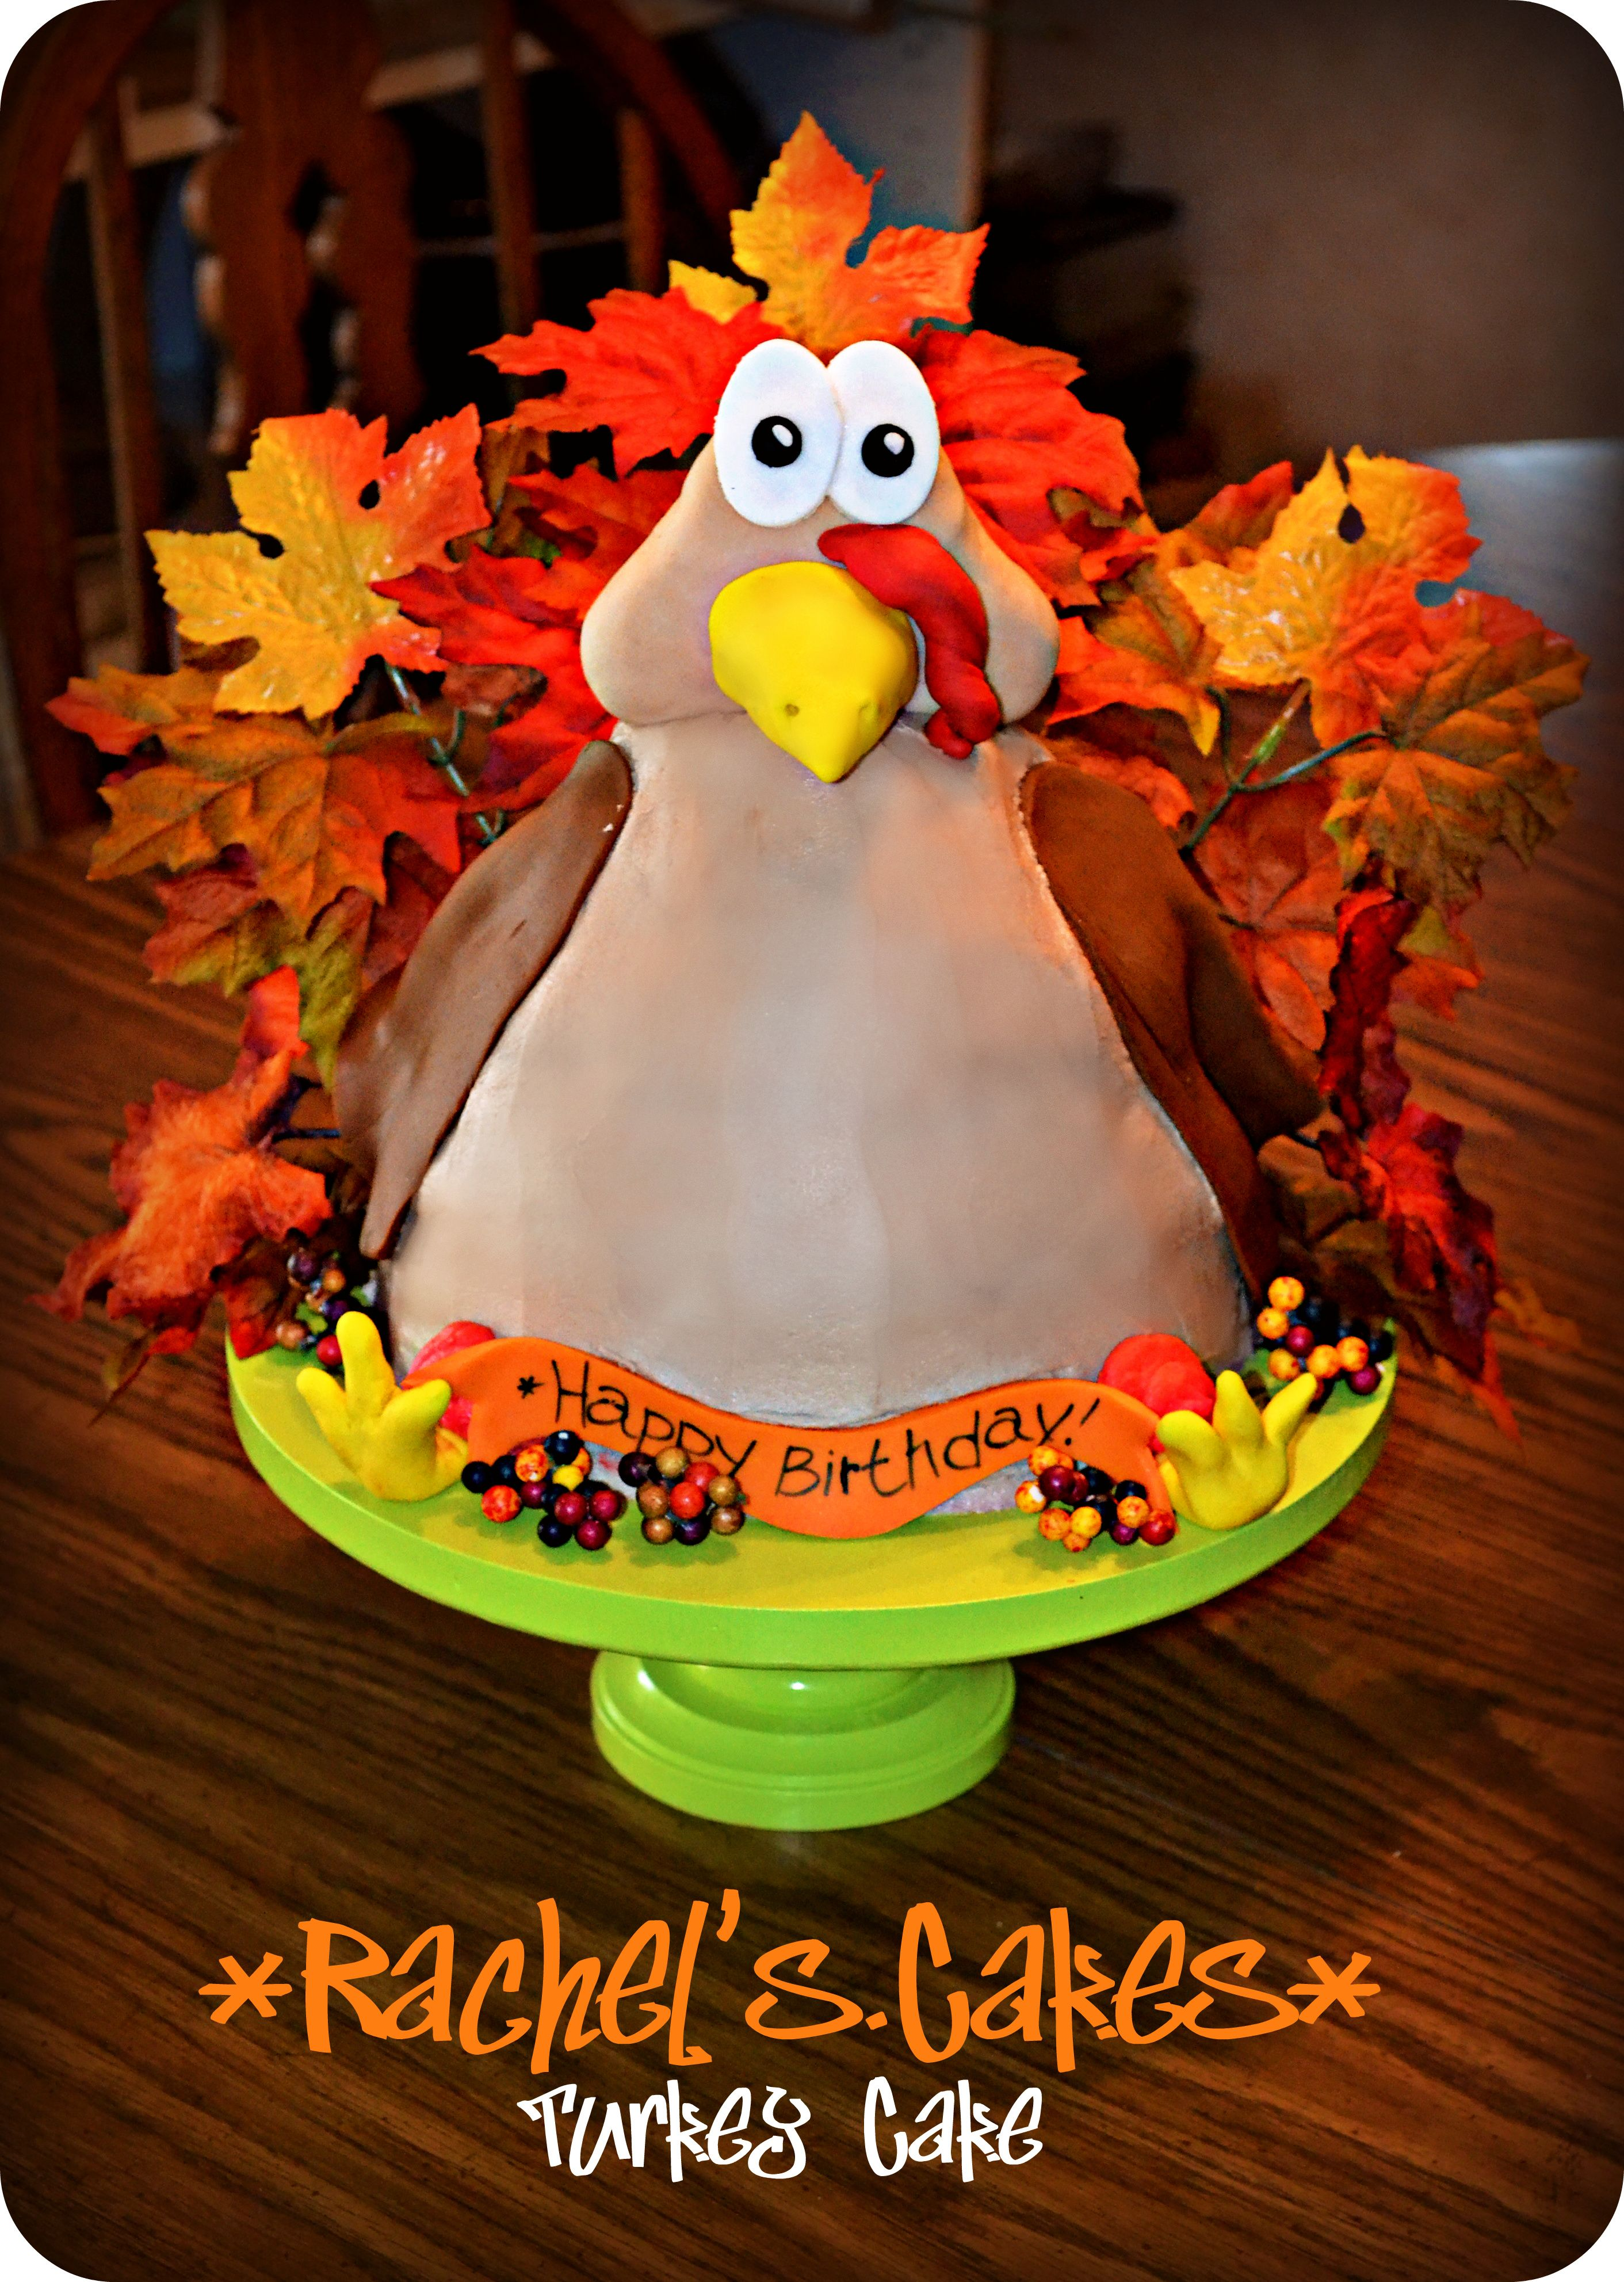 Cool Turkey Cake Perfect For November Birthdays Or Thanksgiving Funny Birthday Cards Online Unhofree Goldxyz